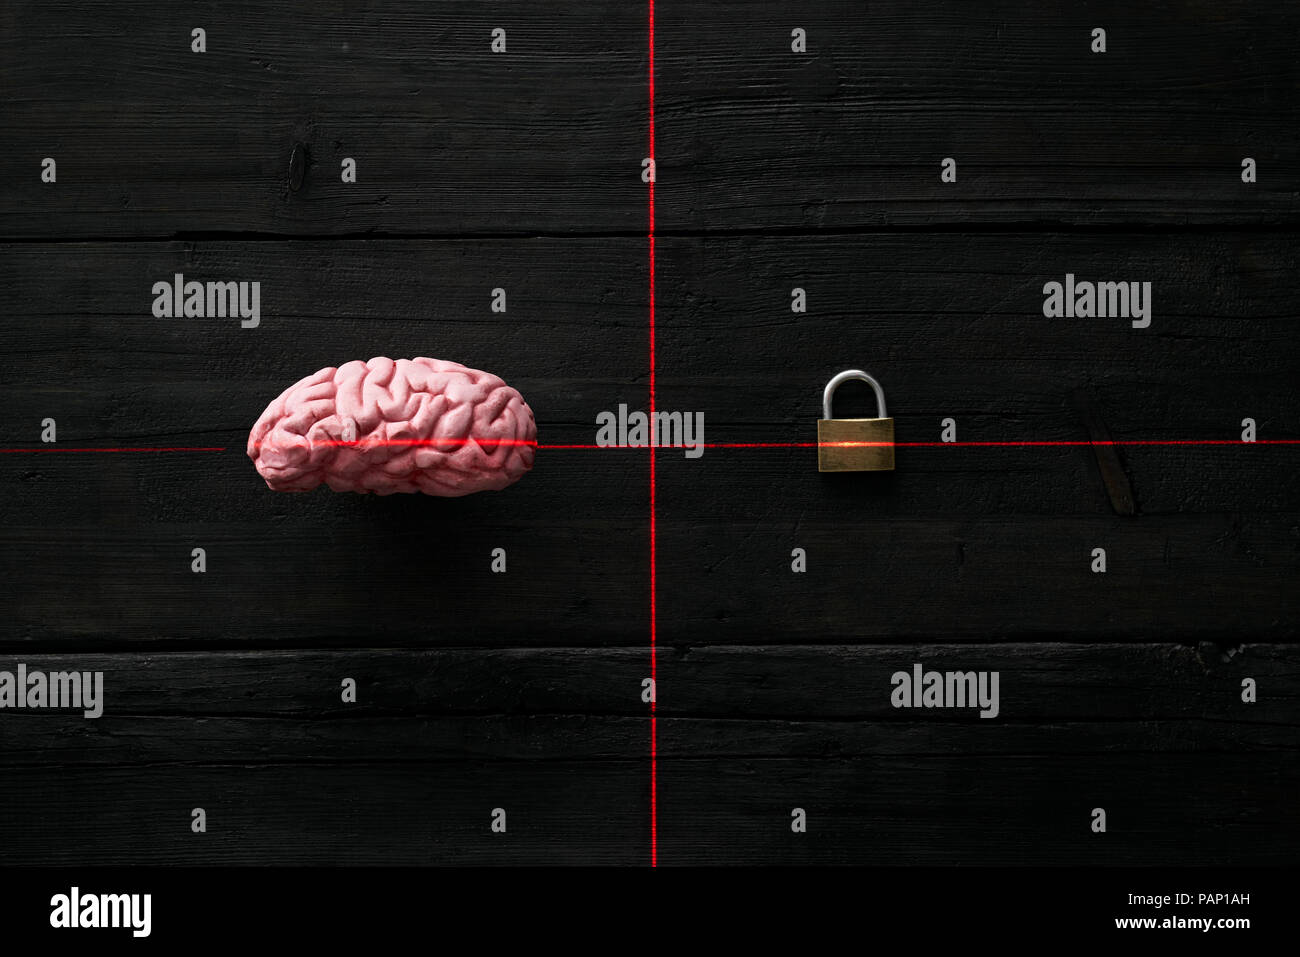 Artificial intelligence, encrypted brain - Stock Image